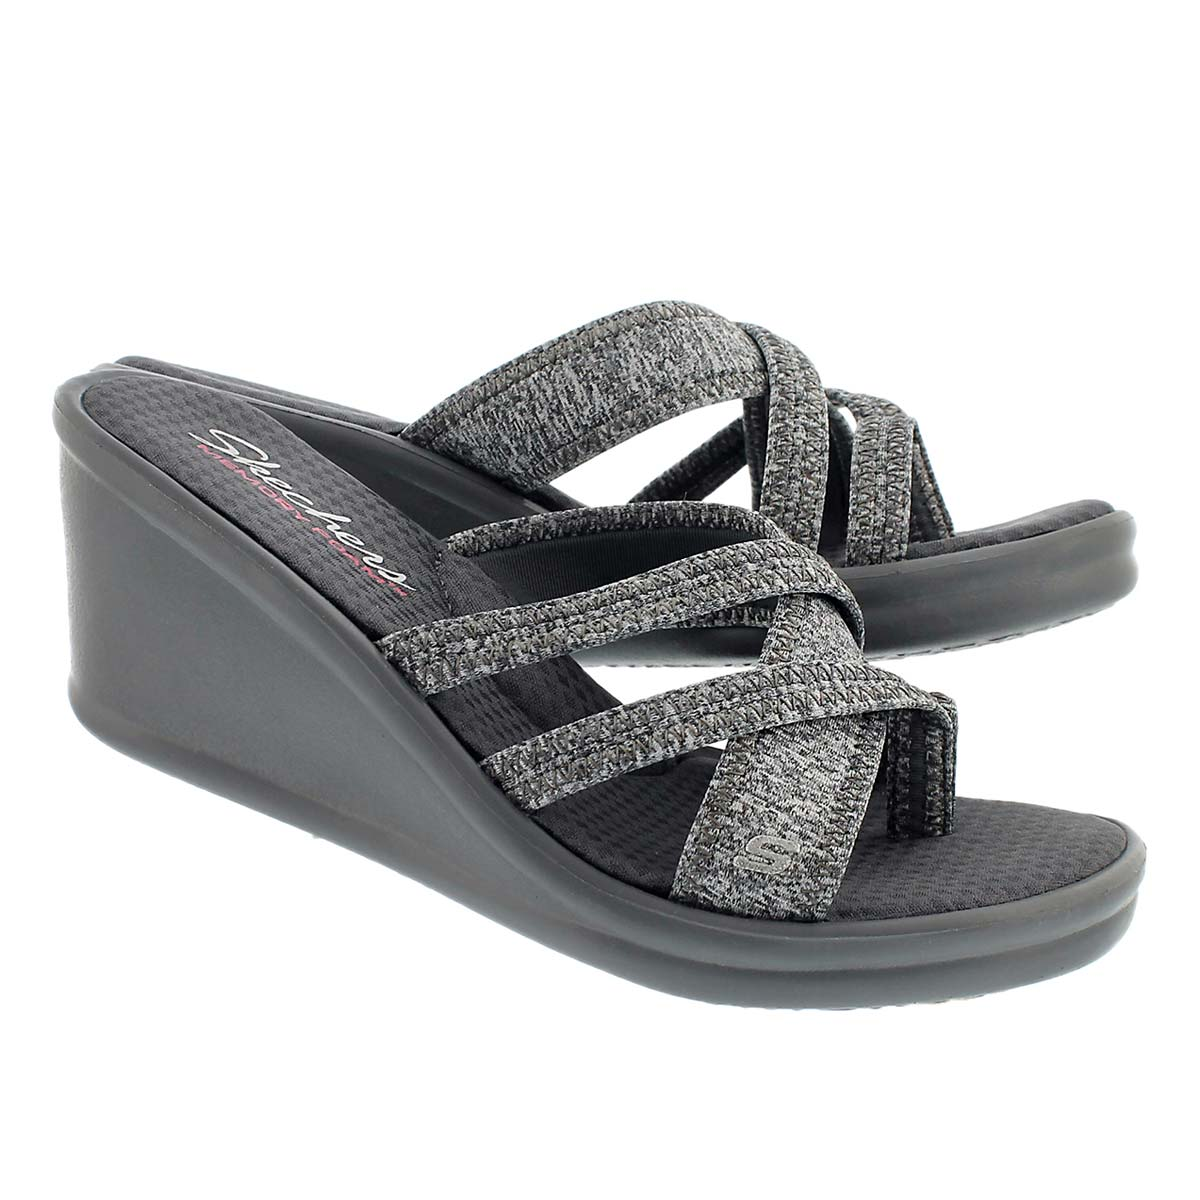 Lds Rumblers gry thong wedge sandal